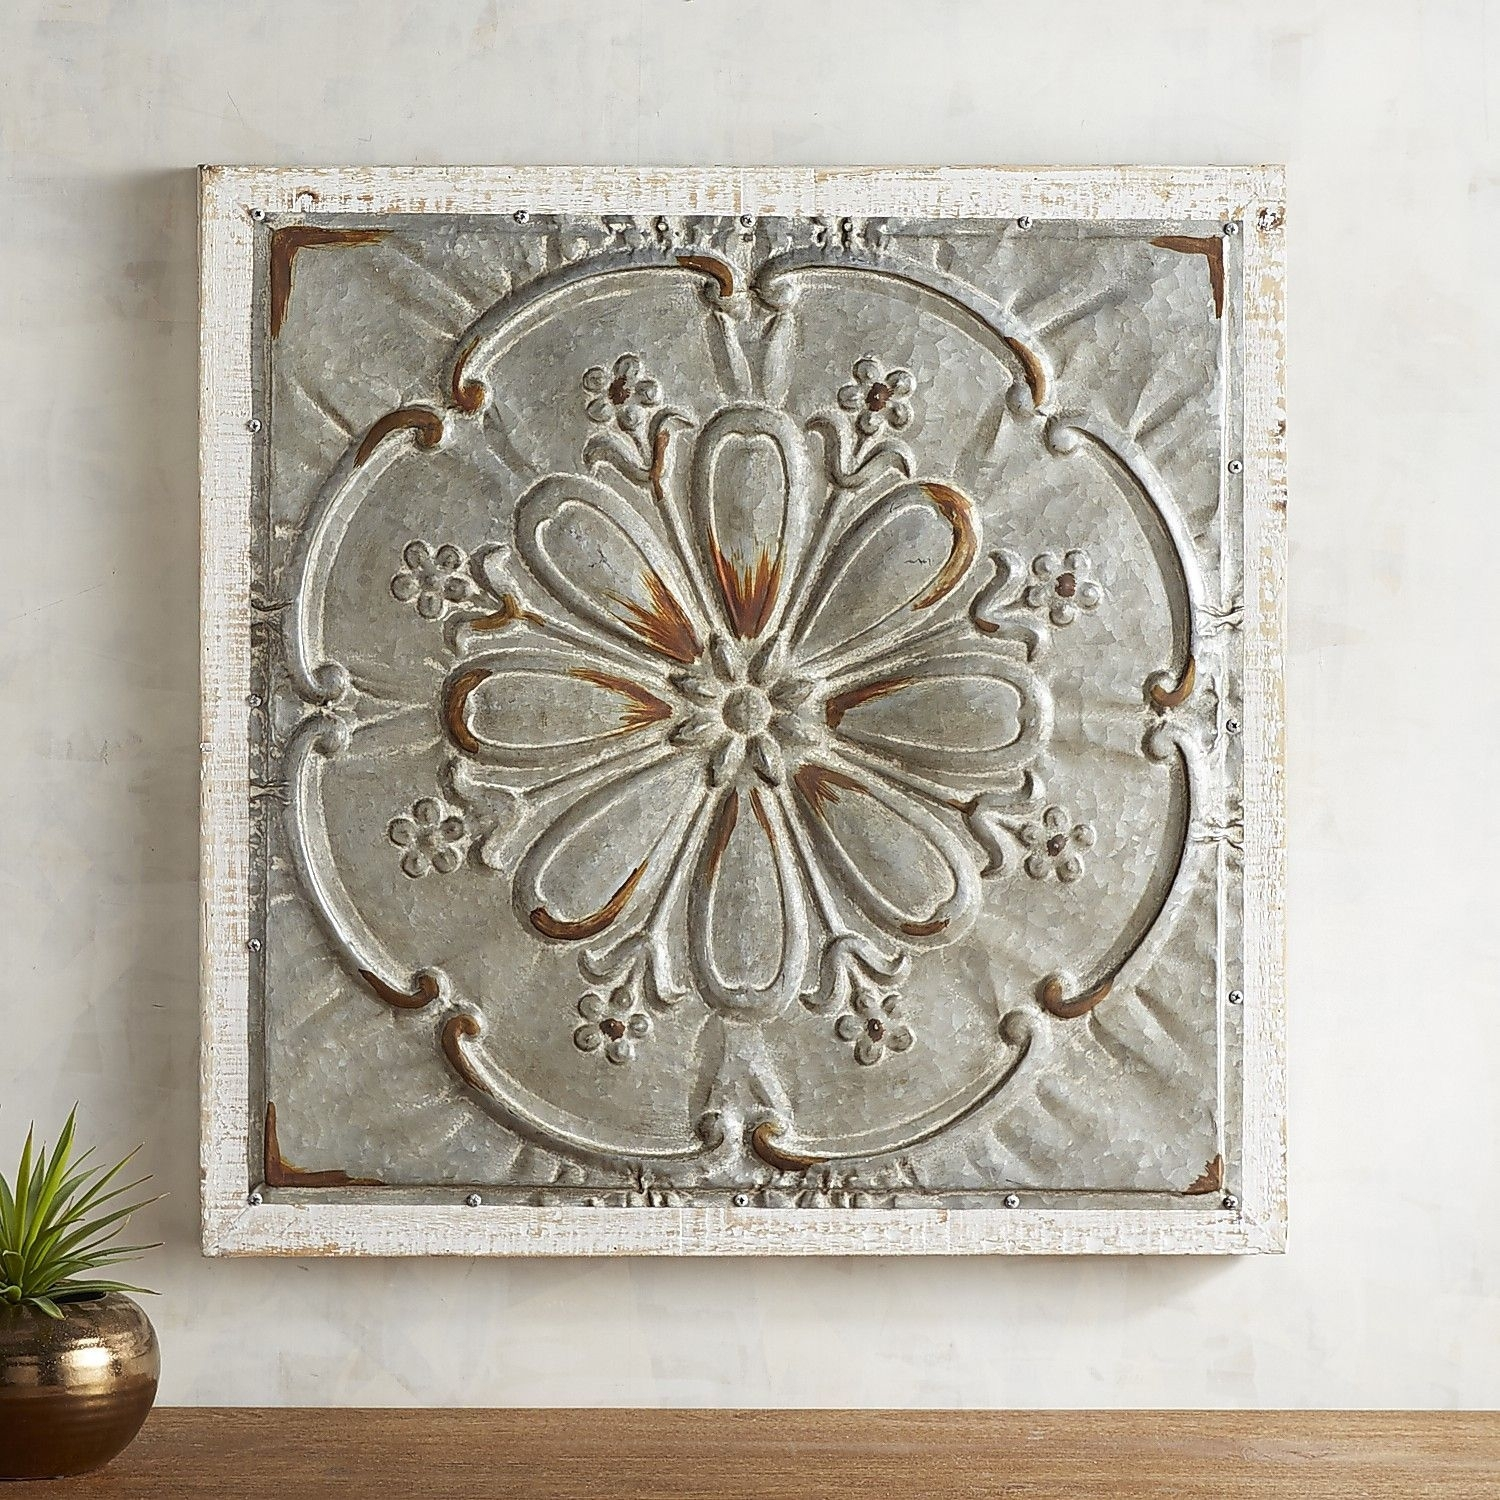 Whitewashed Medallion Wall Decor | Pinterest | Wall Decor, Walls And Inside Most Up To Date Medallion Wall Art (View 8 of 20)